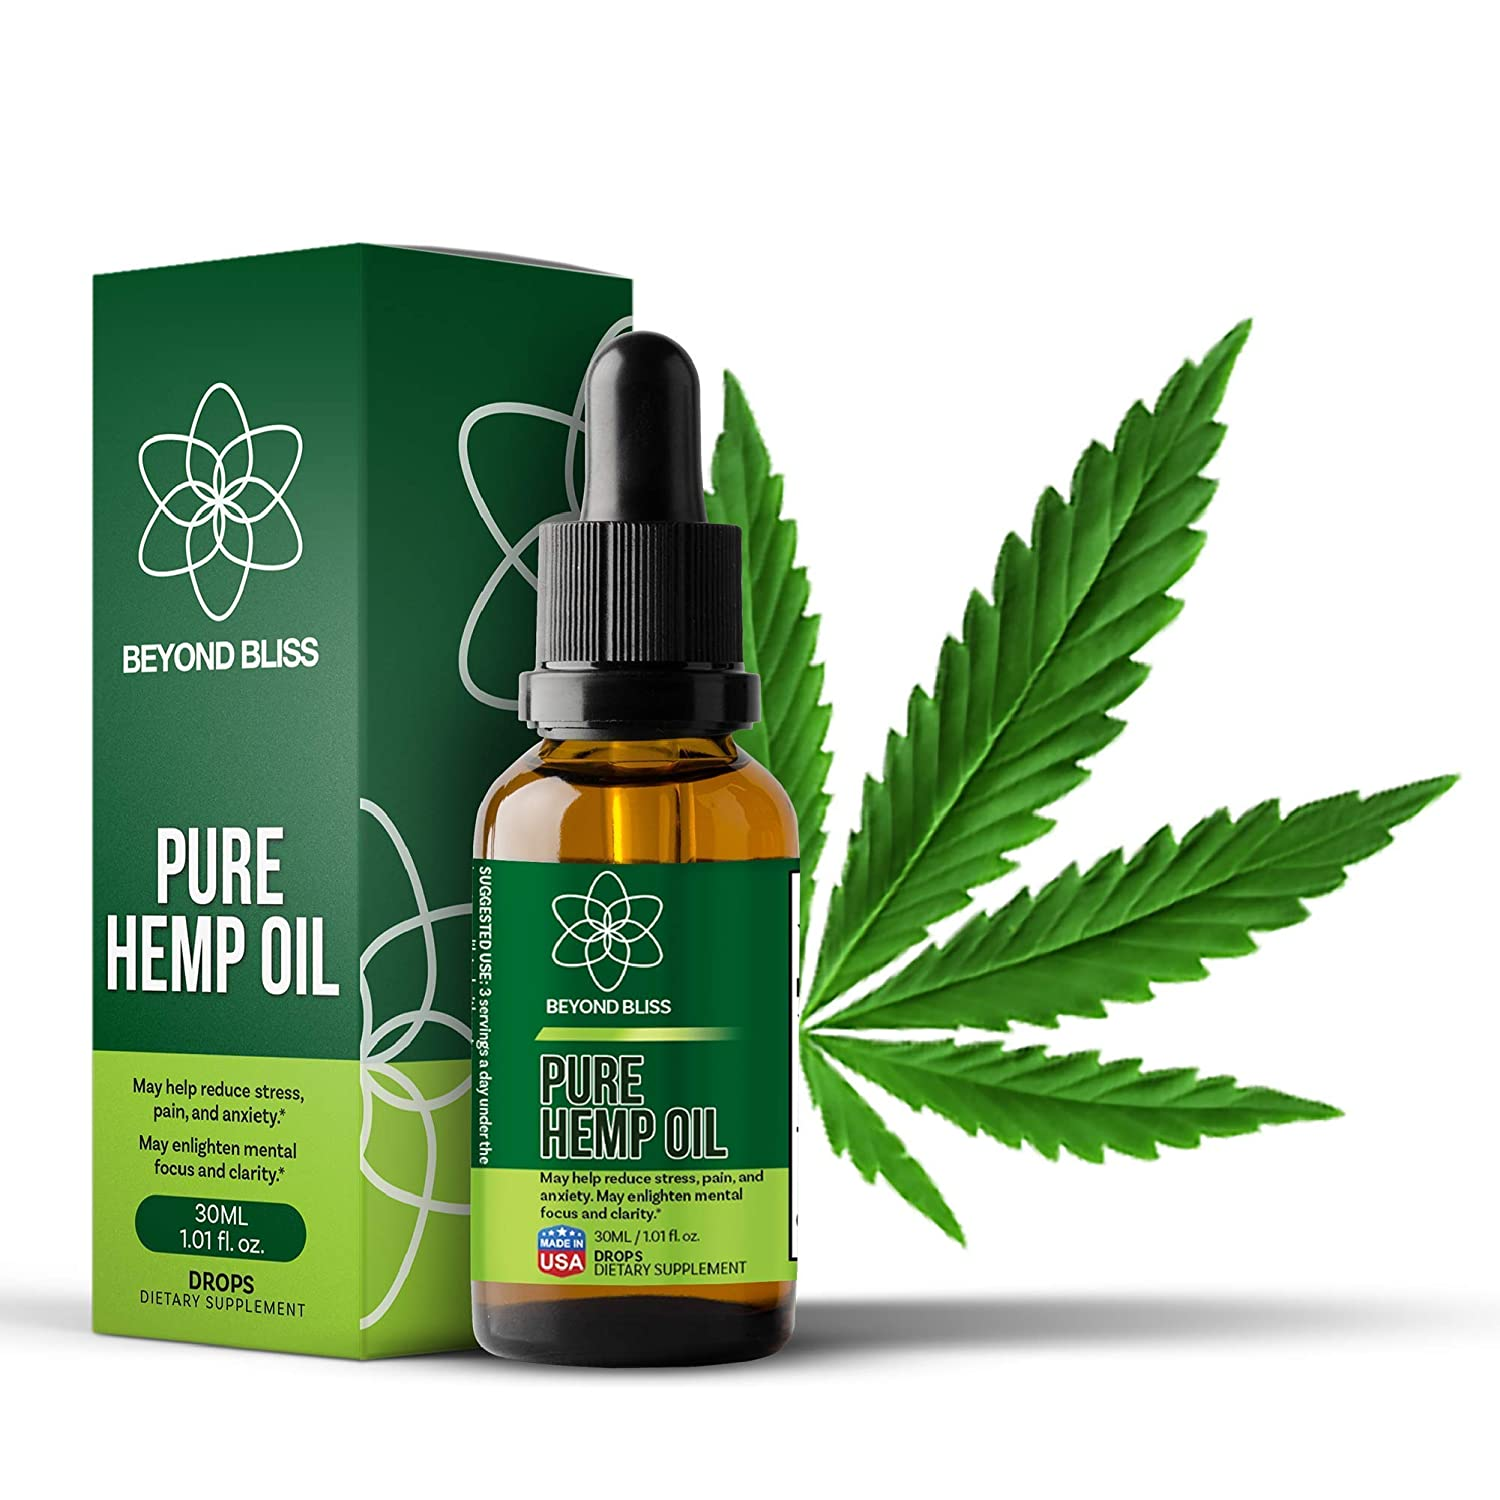 Beyond Bliss Hemp Oil Drops - 1050 Milligrams Daily - Promotes Pain Relief  - USA Made - Anxiety / Stress Relief Supplement - Natural Extract - Organic